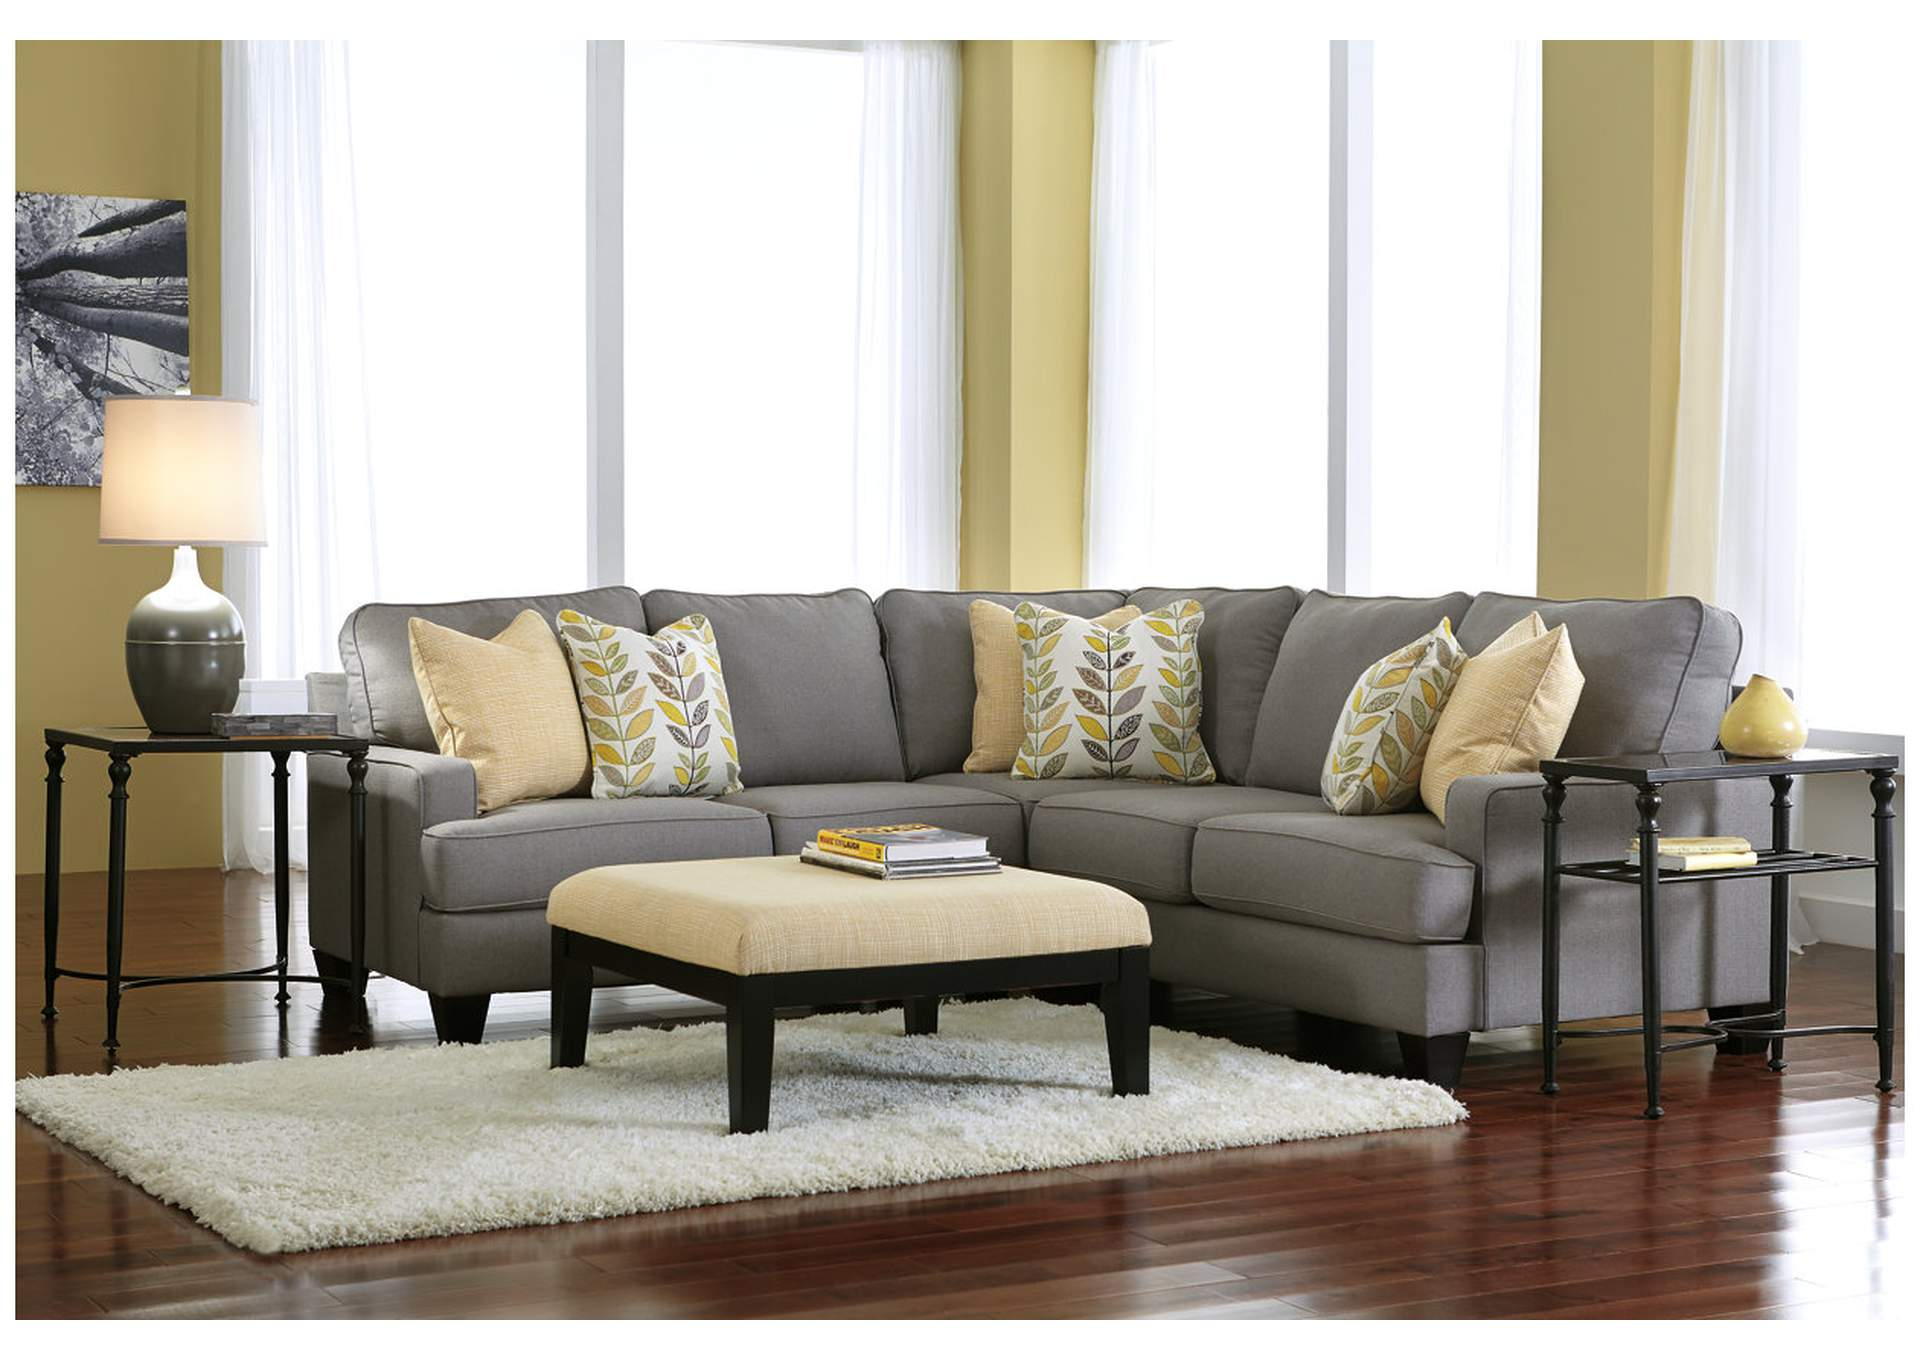 Davis Home Furniture Asheville Nc Chamberly Alloy Sectional